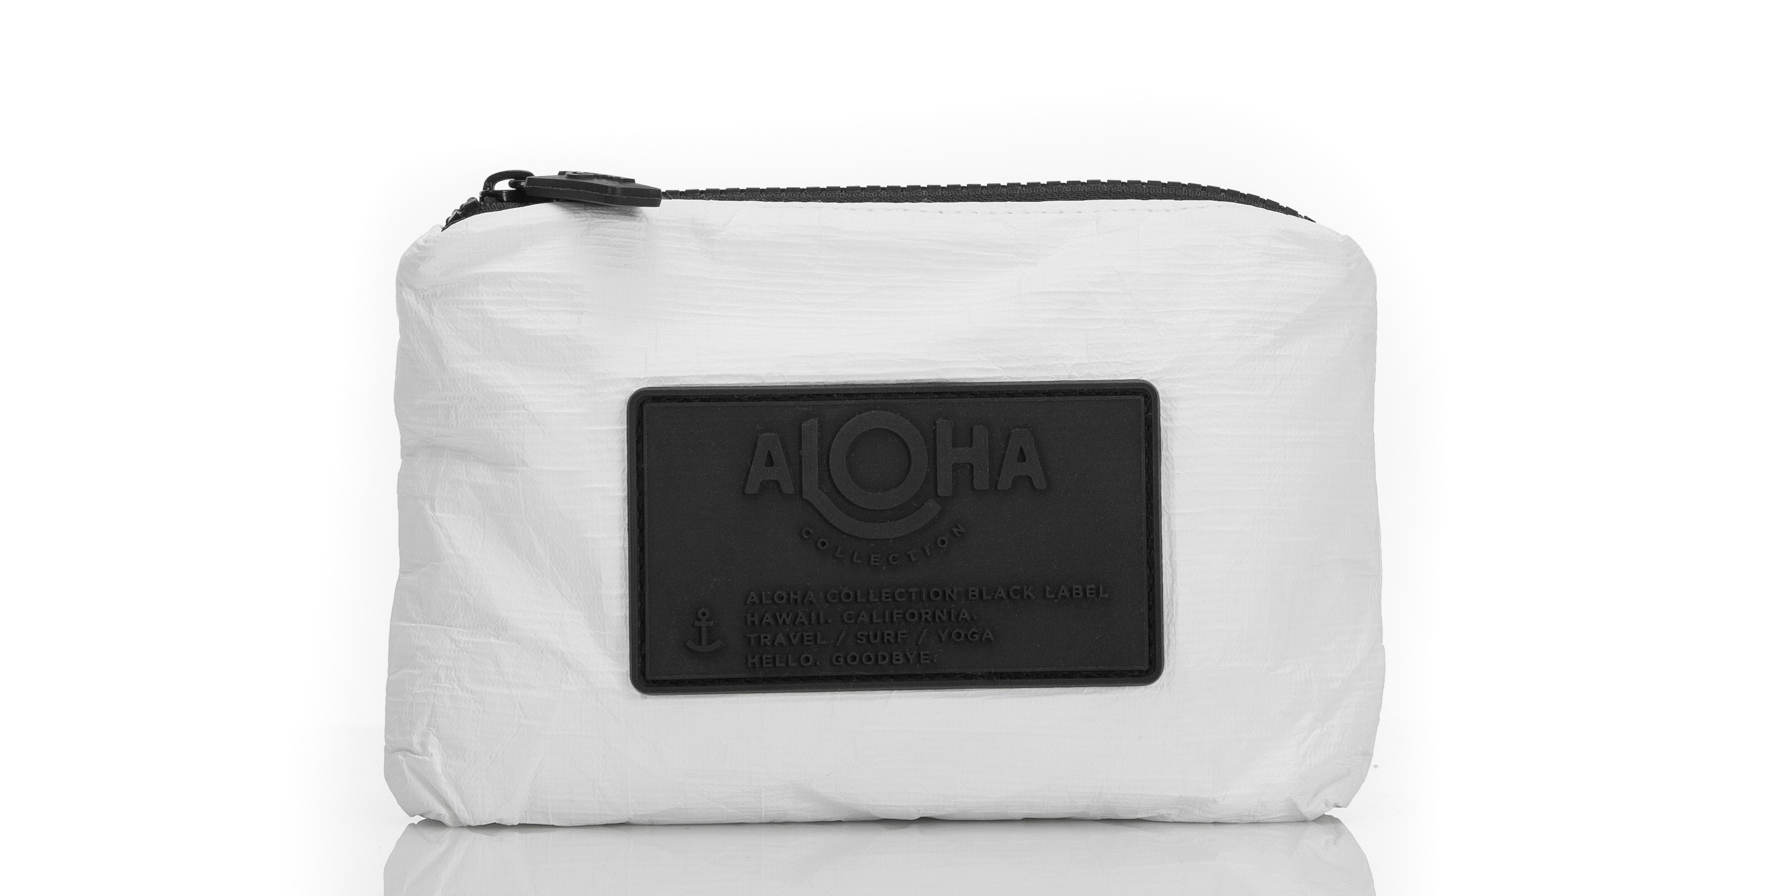 Aloha-Collection-Mini-White-Pouch - For moms who are always on the go, this Aloha pouch can hold all of her essentials. $22, aloha-collection.com